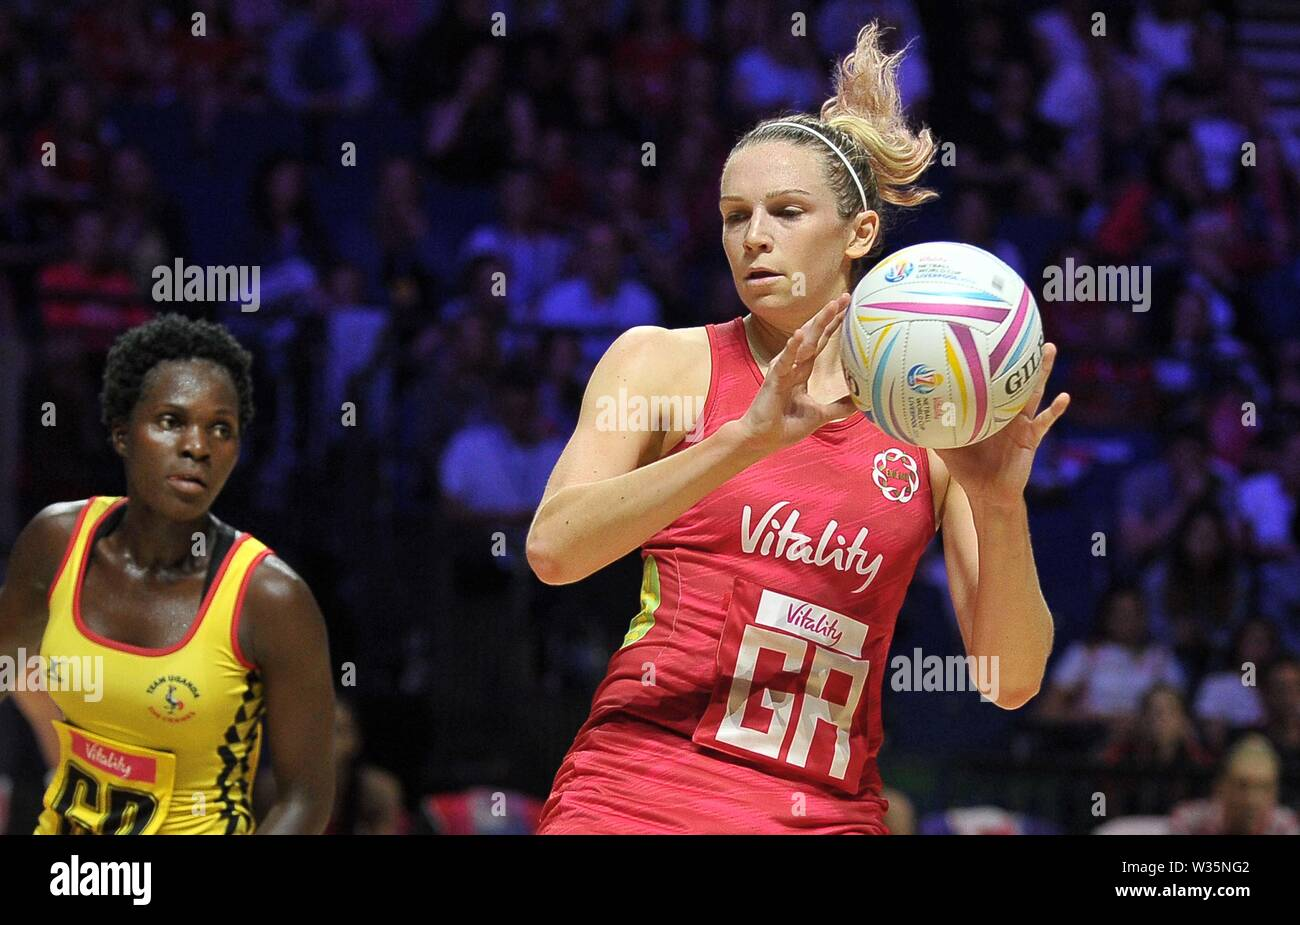 Liverpool. United Kingdom. 12 July 2019. Joanne Harten (England) during the Preliminary game between England and Uganda at the Netball World Cup. M and S arena, Liverpool. Merseyside. UK. Credit Garry Bowdenh/SIP photo agency/Alamy live news. - Stock Image